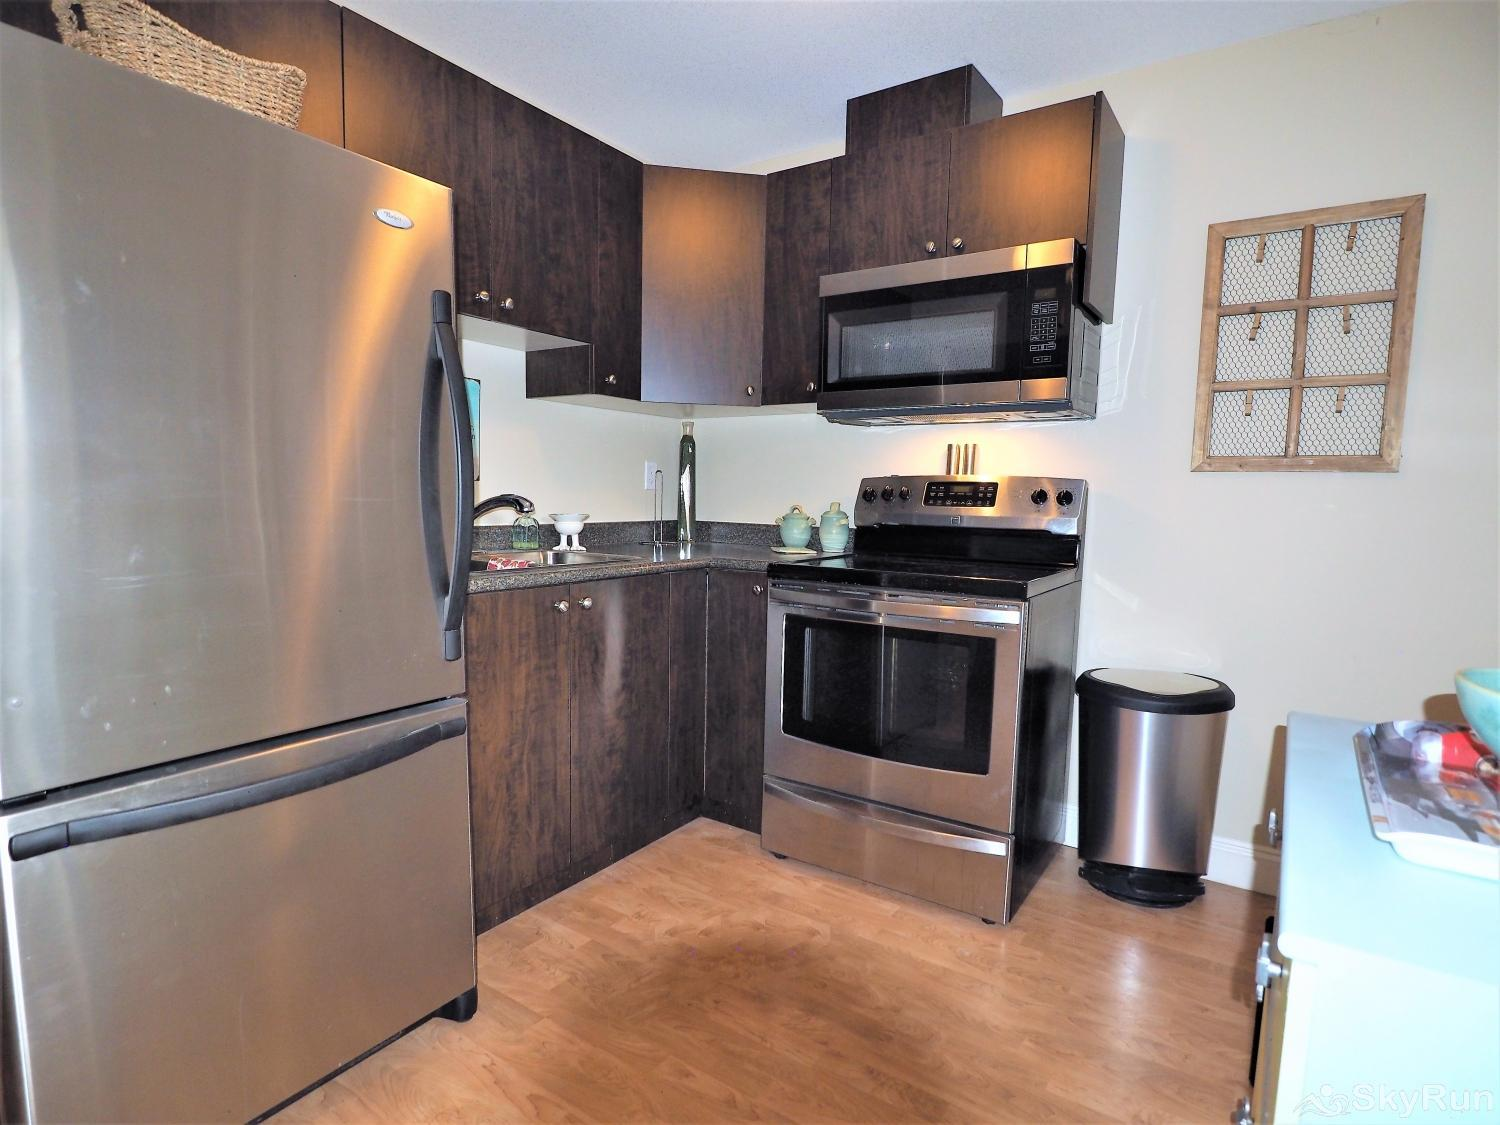 Old Summerland 1 bedroom suite This fully stocked kitchen has everything you need to prepare a lovely meal